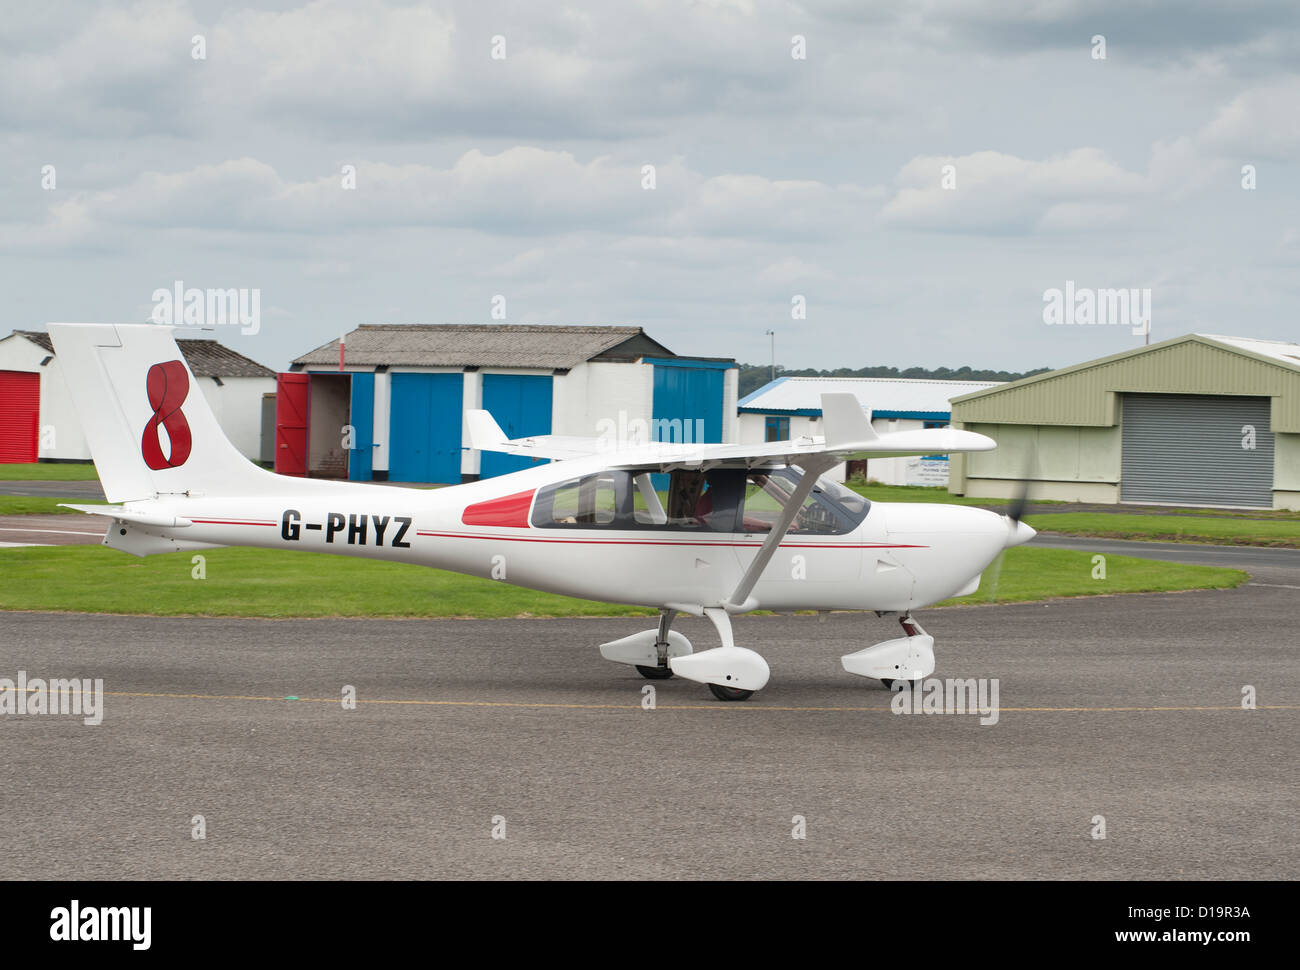 Jabiru J430 light aircraft at Halfpennygreen Airfield, Bobbington. England.  SCO 8882 - Stock Image